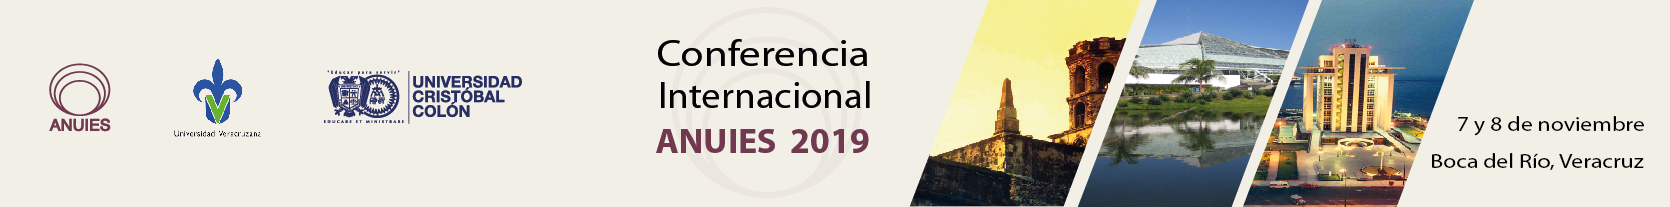 Conferencia Internacional ANUIES 2019